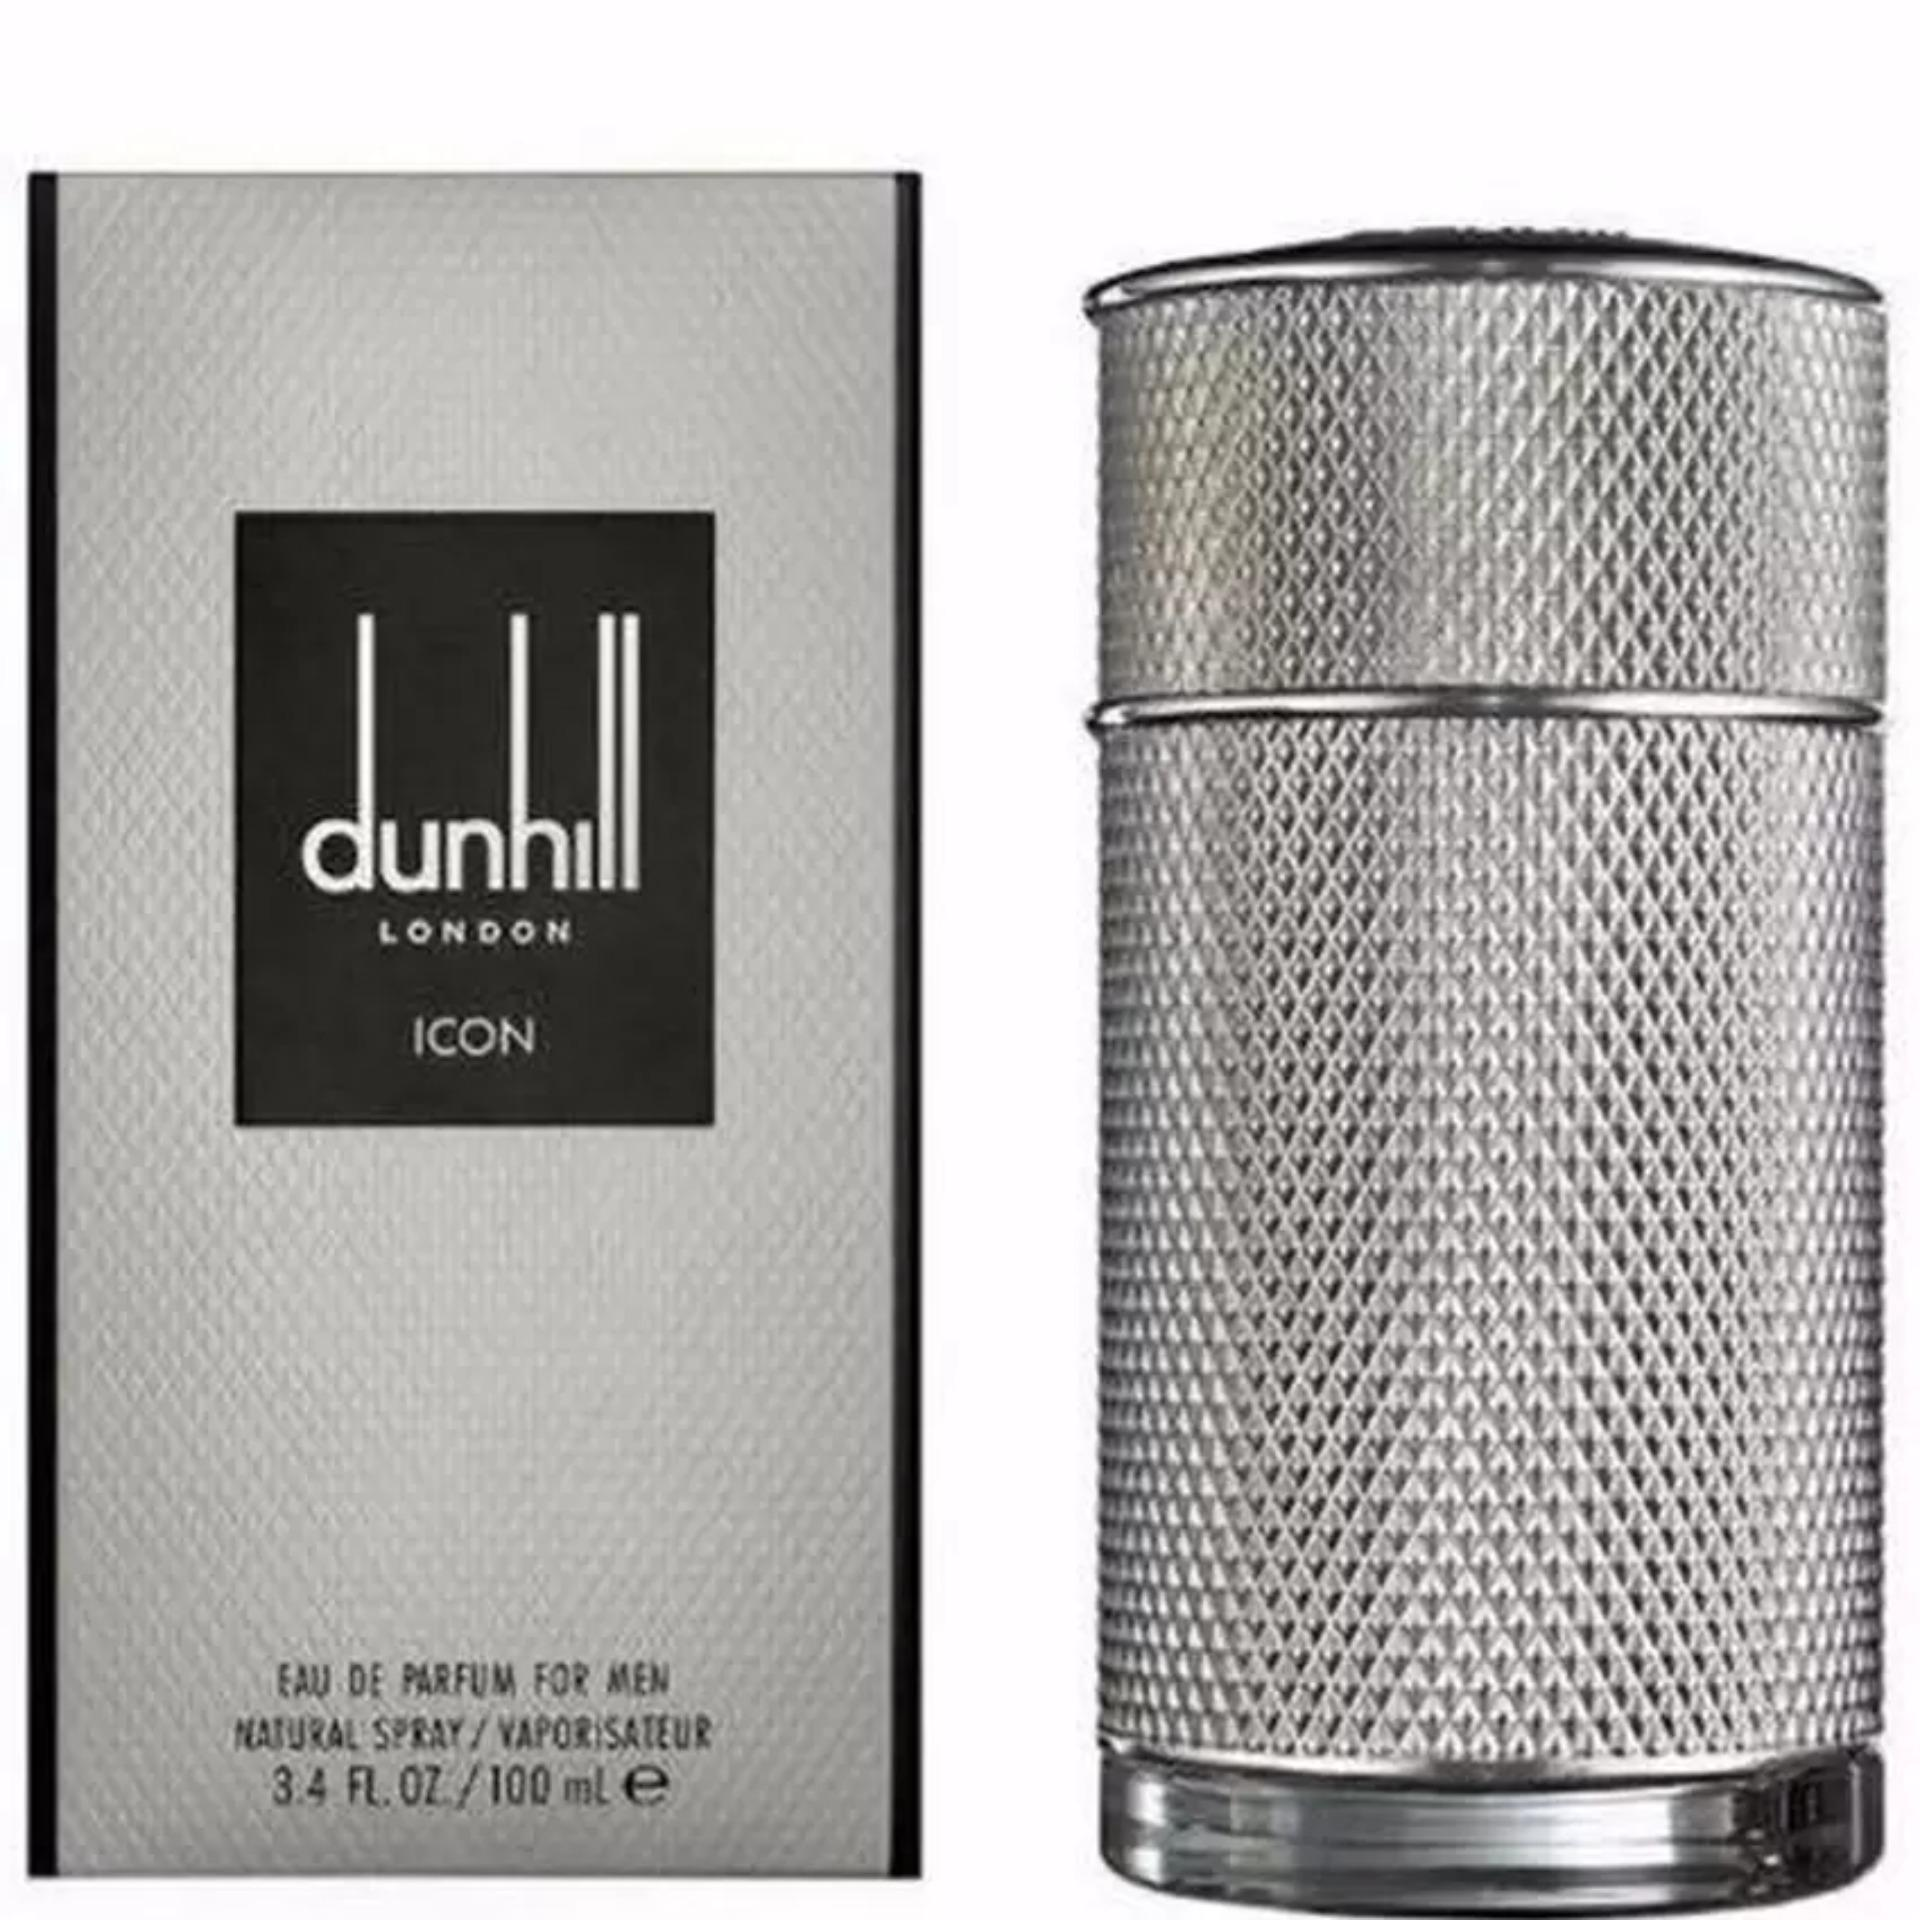 Dunhill London Icon Eau De Parfum Perfume for Men 100ml - thumbnail